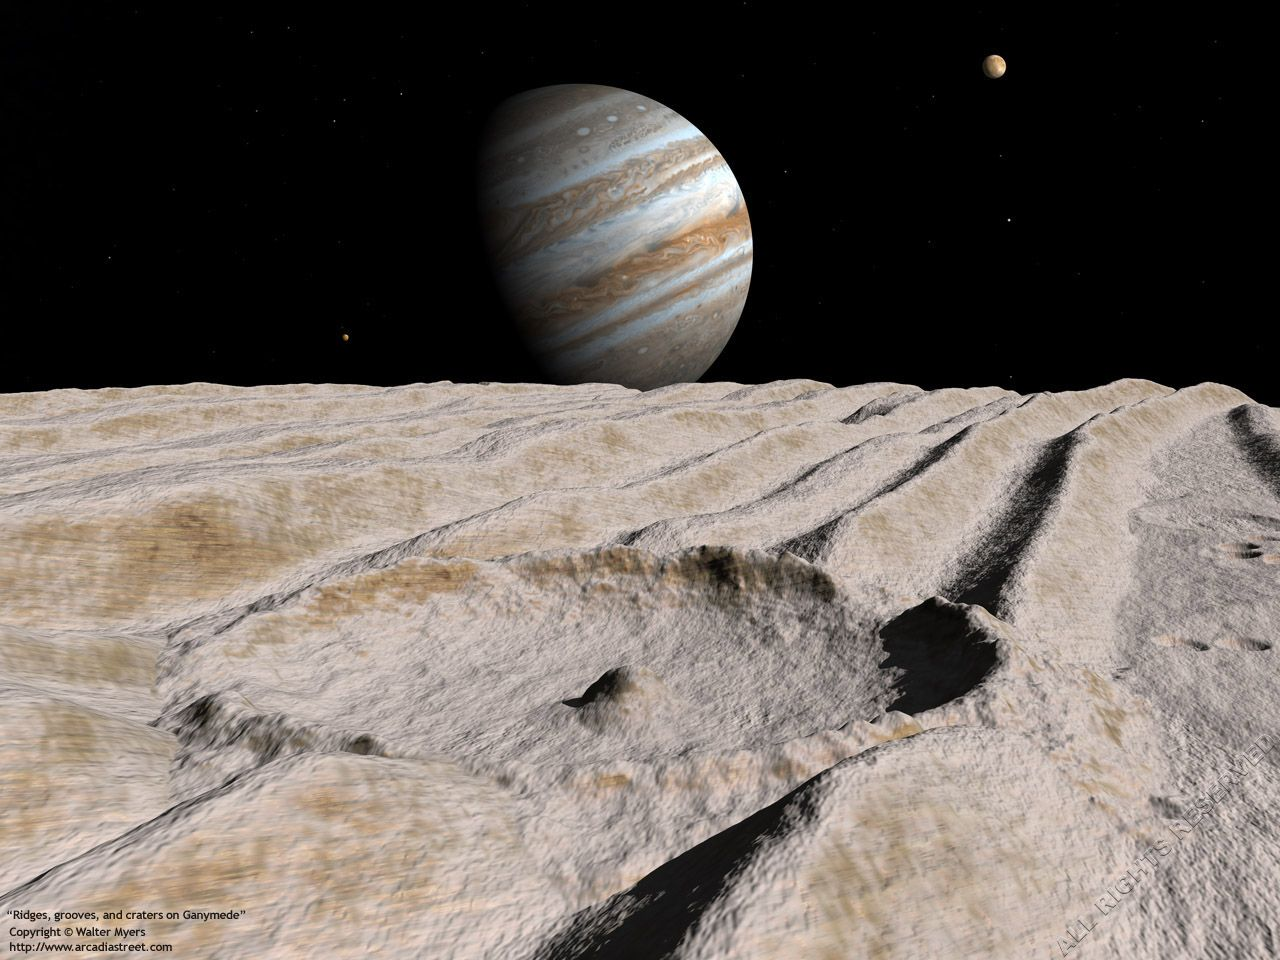 Jupiter's moon Ganymede may have layered oceans that ...